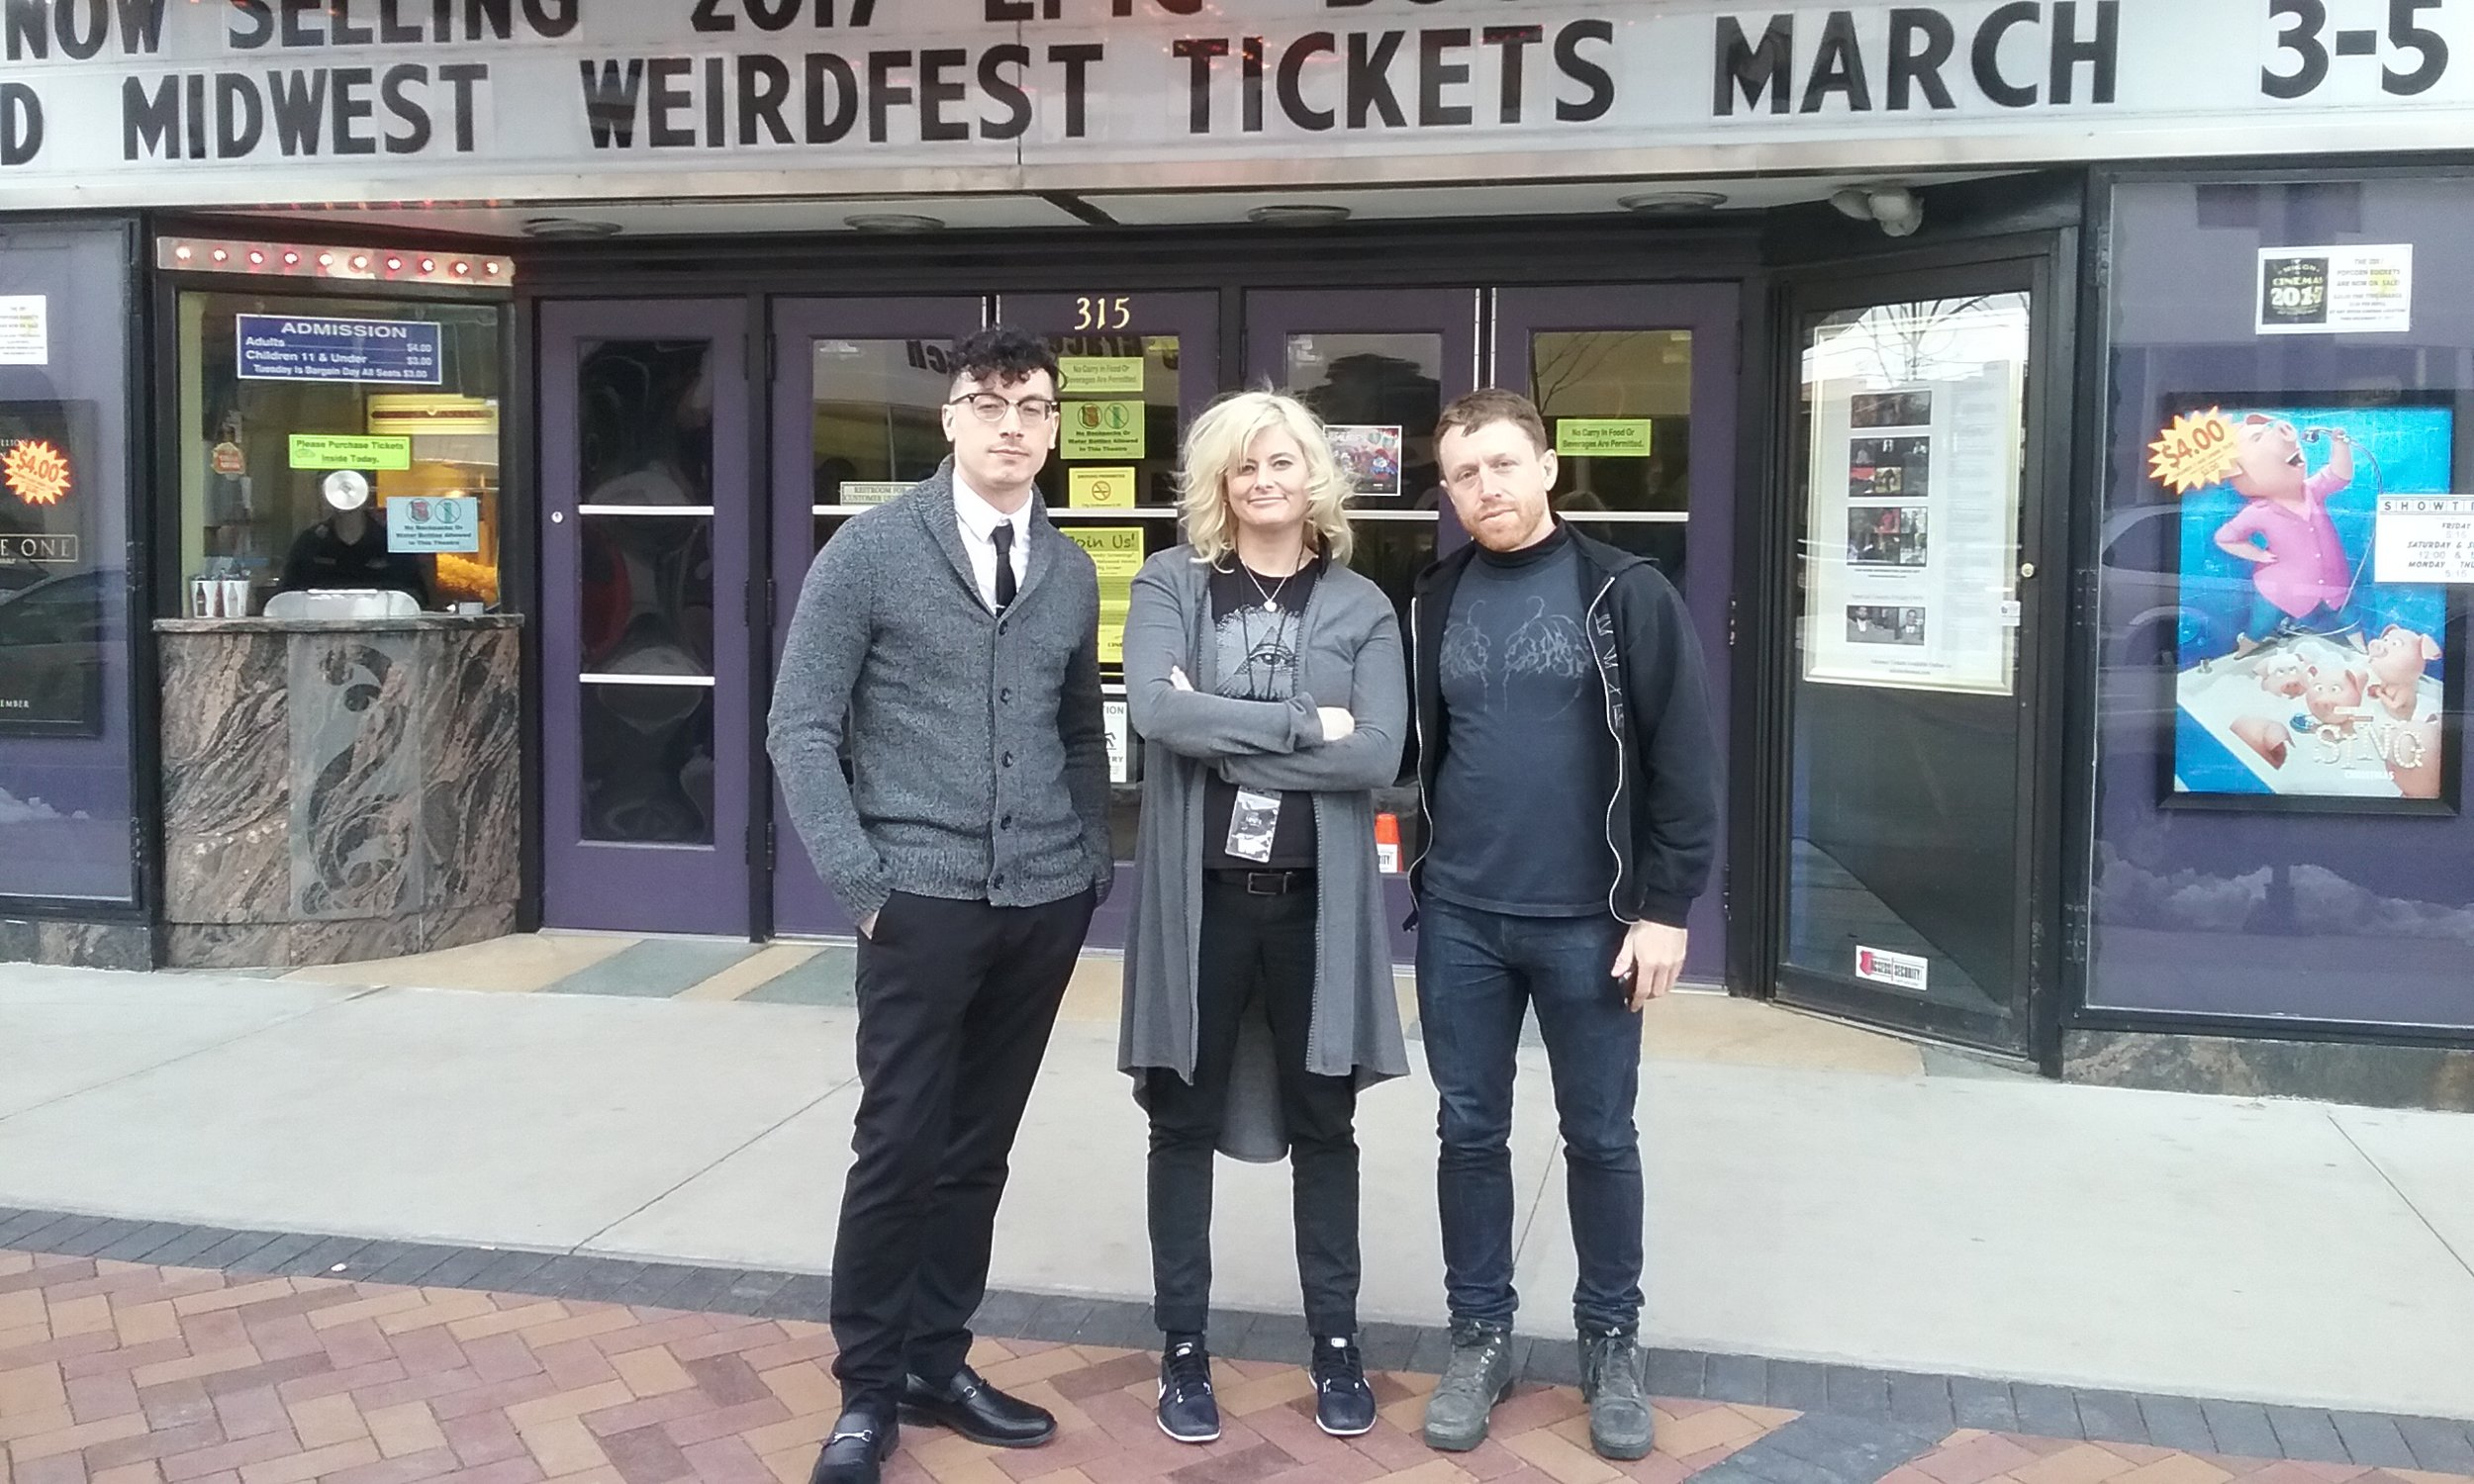 (Left to right) Danny Villanaueva Jr.,  Maddie Holliday Von Stark, and Dan Schneidkraut at MidWest WeirdFest 2017.